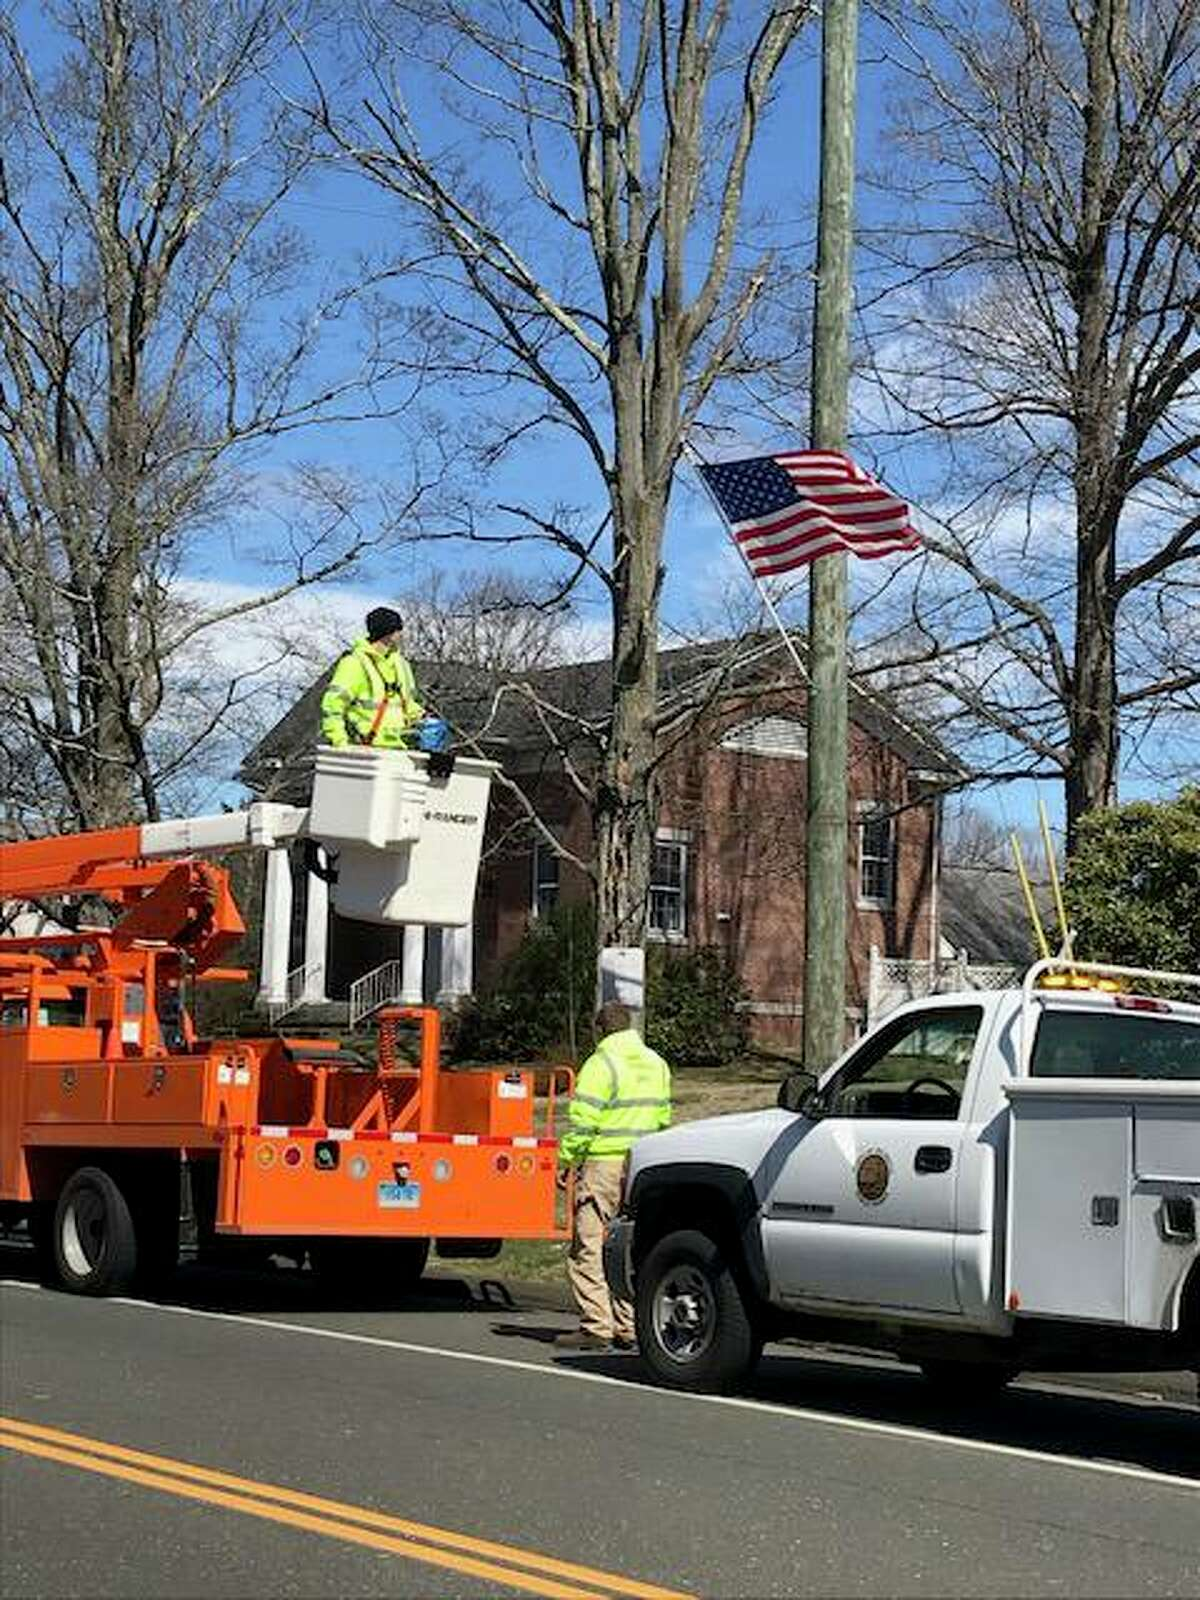 Workers hang American flags from utility poles along Main Street Tuesday afternoon.